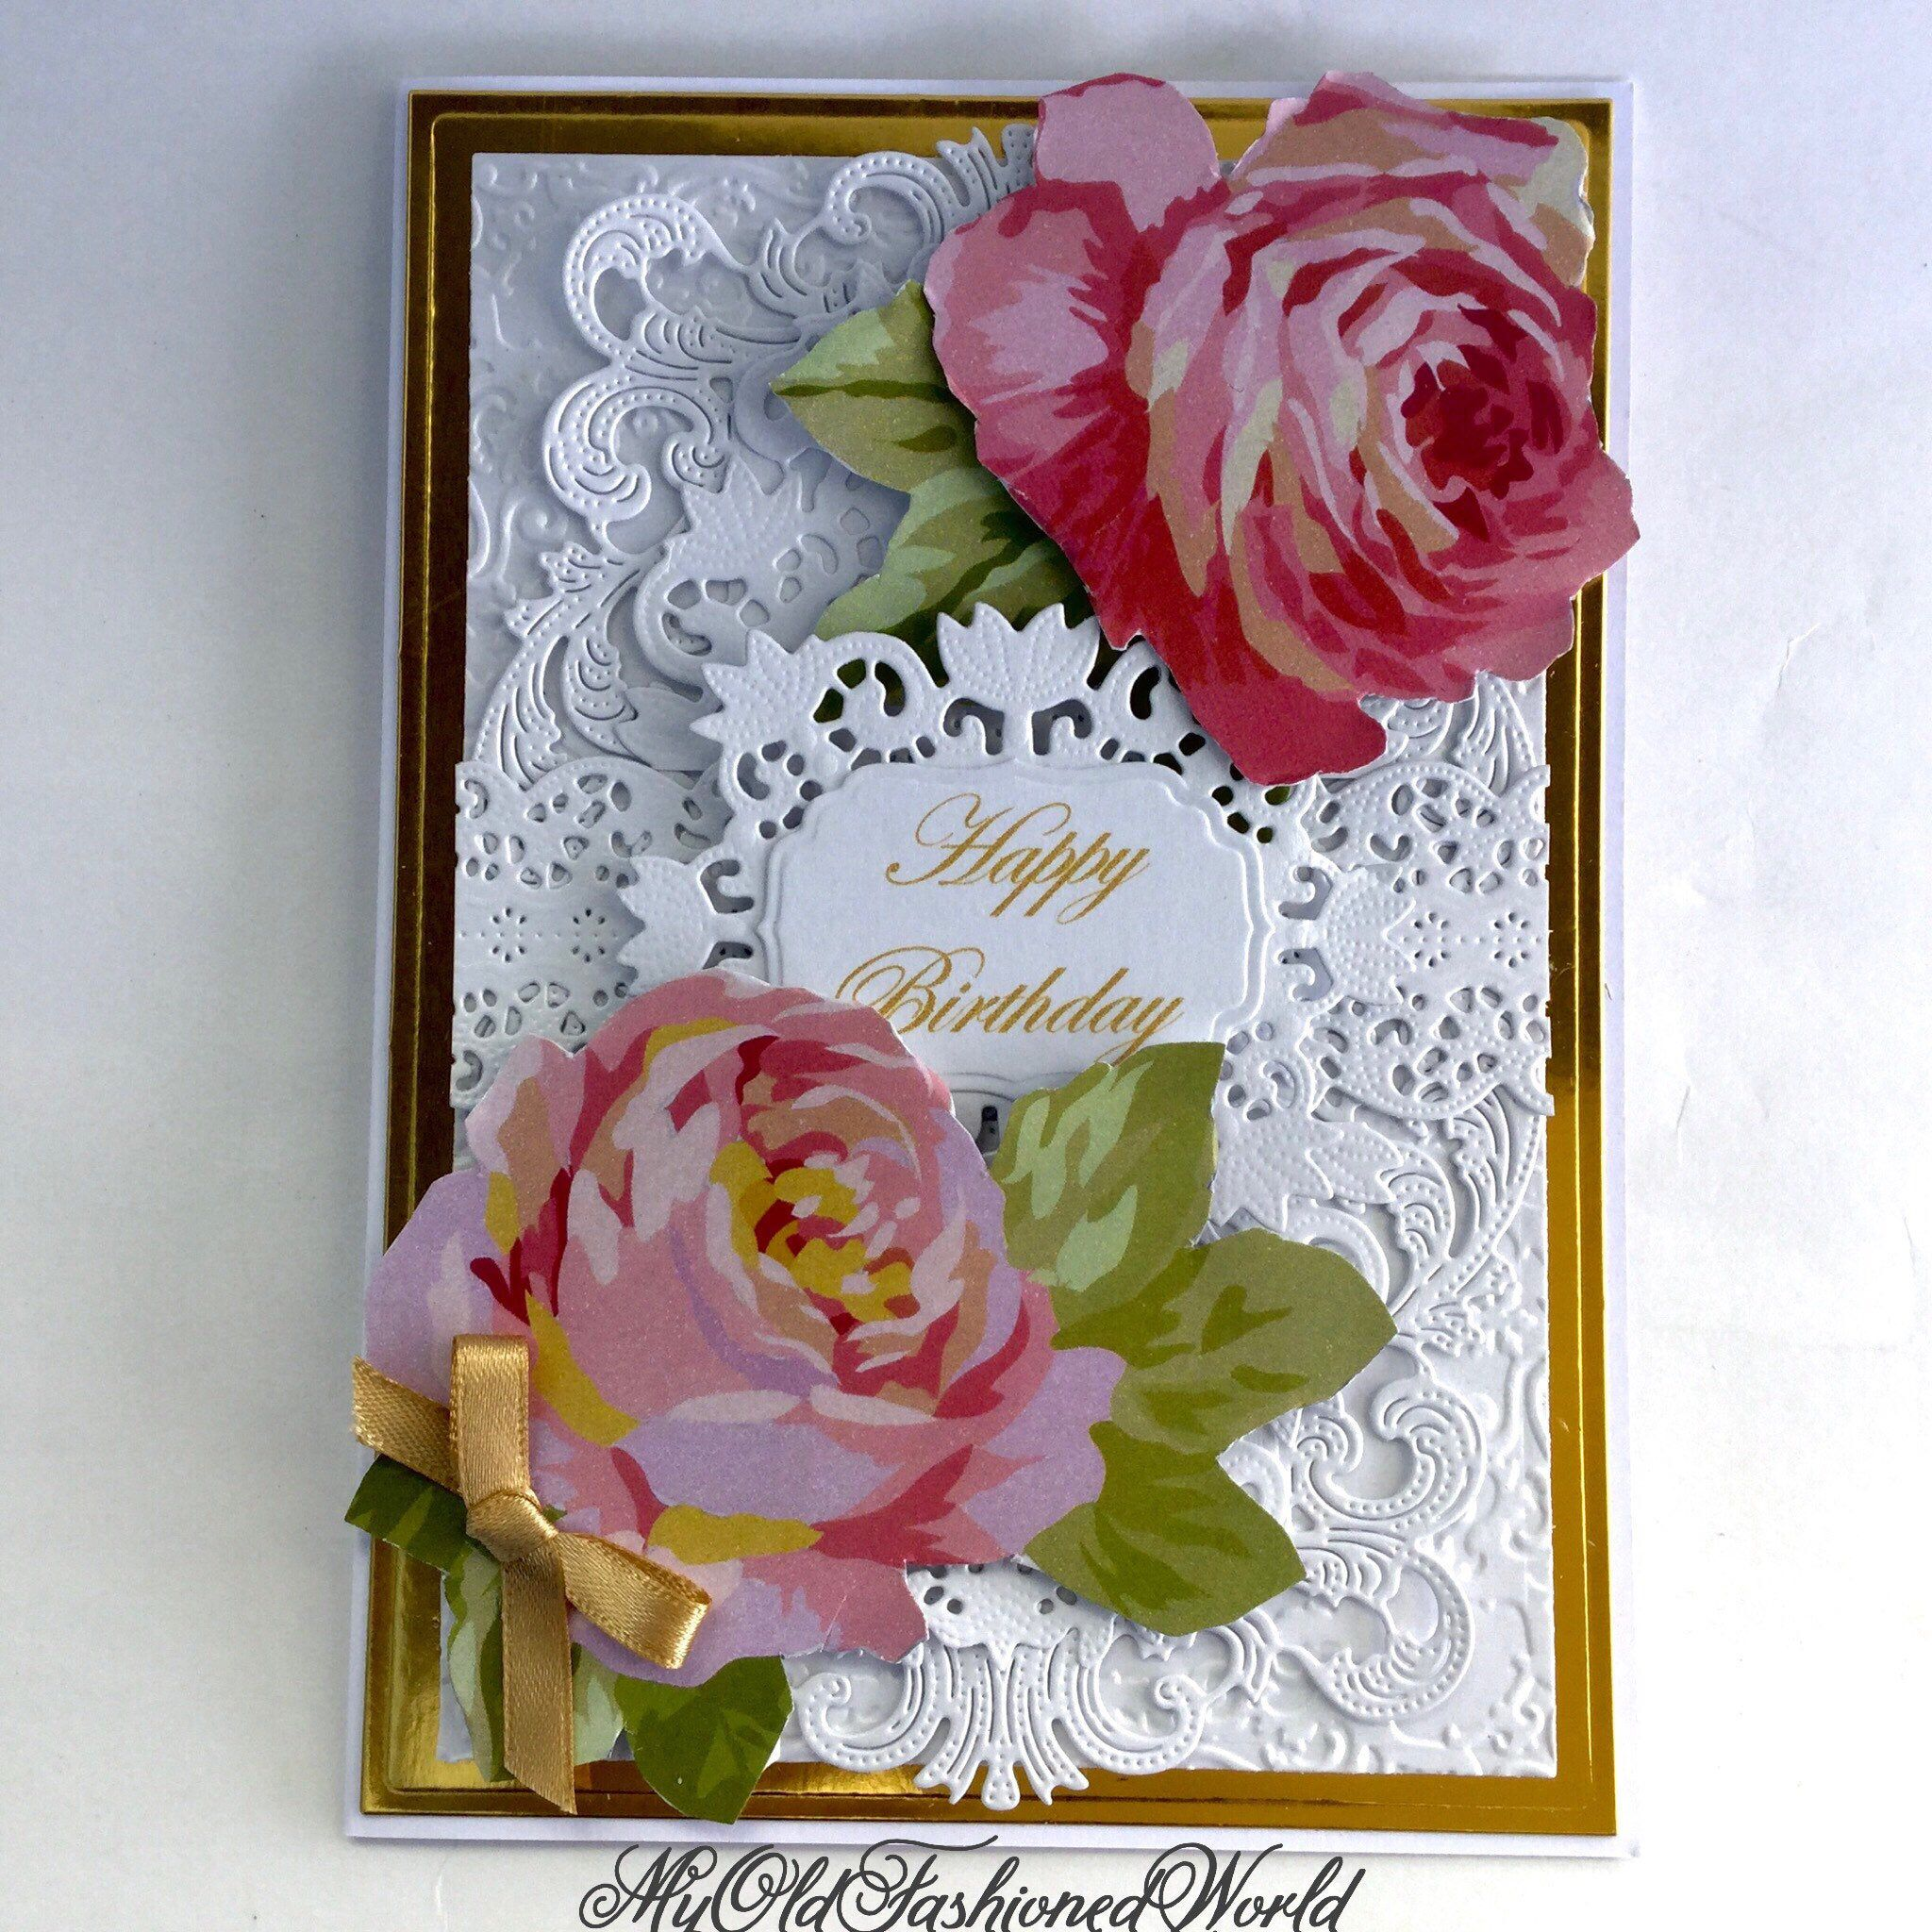 Romantic old fashioned vintage style birthday card for a